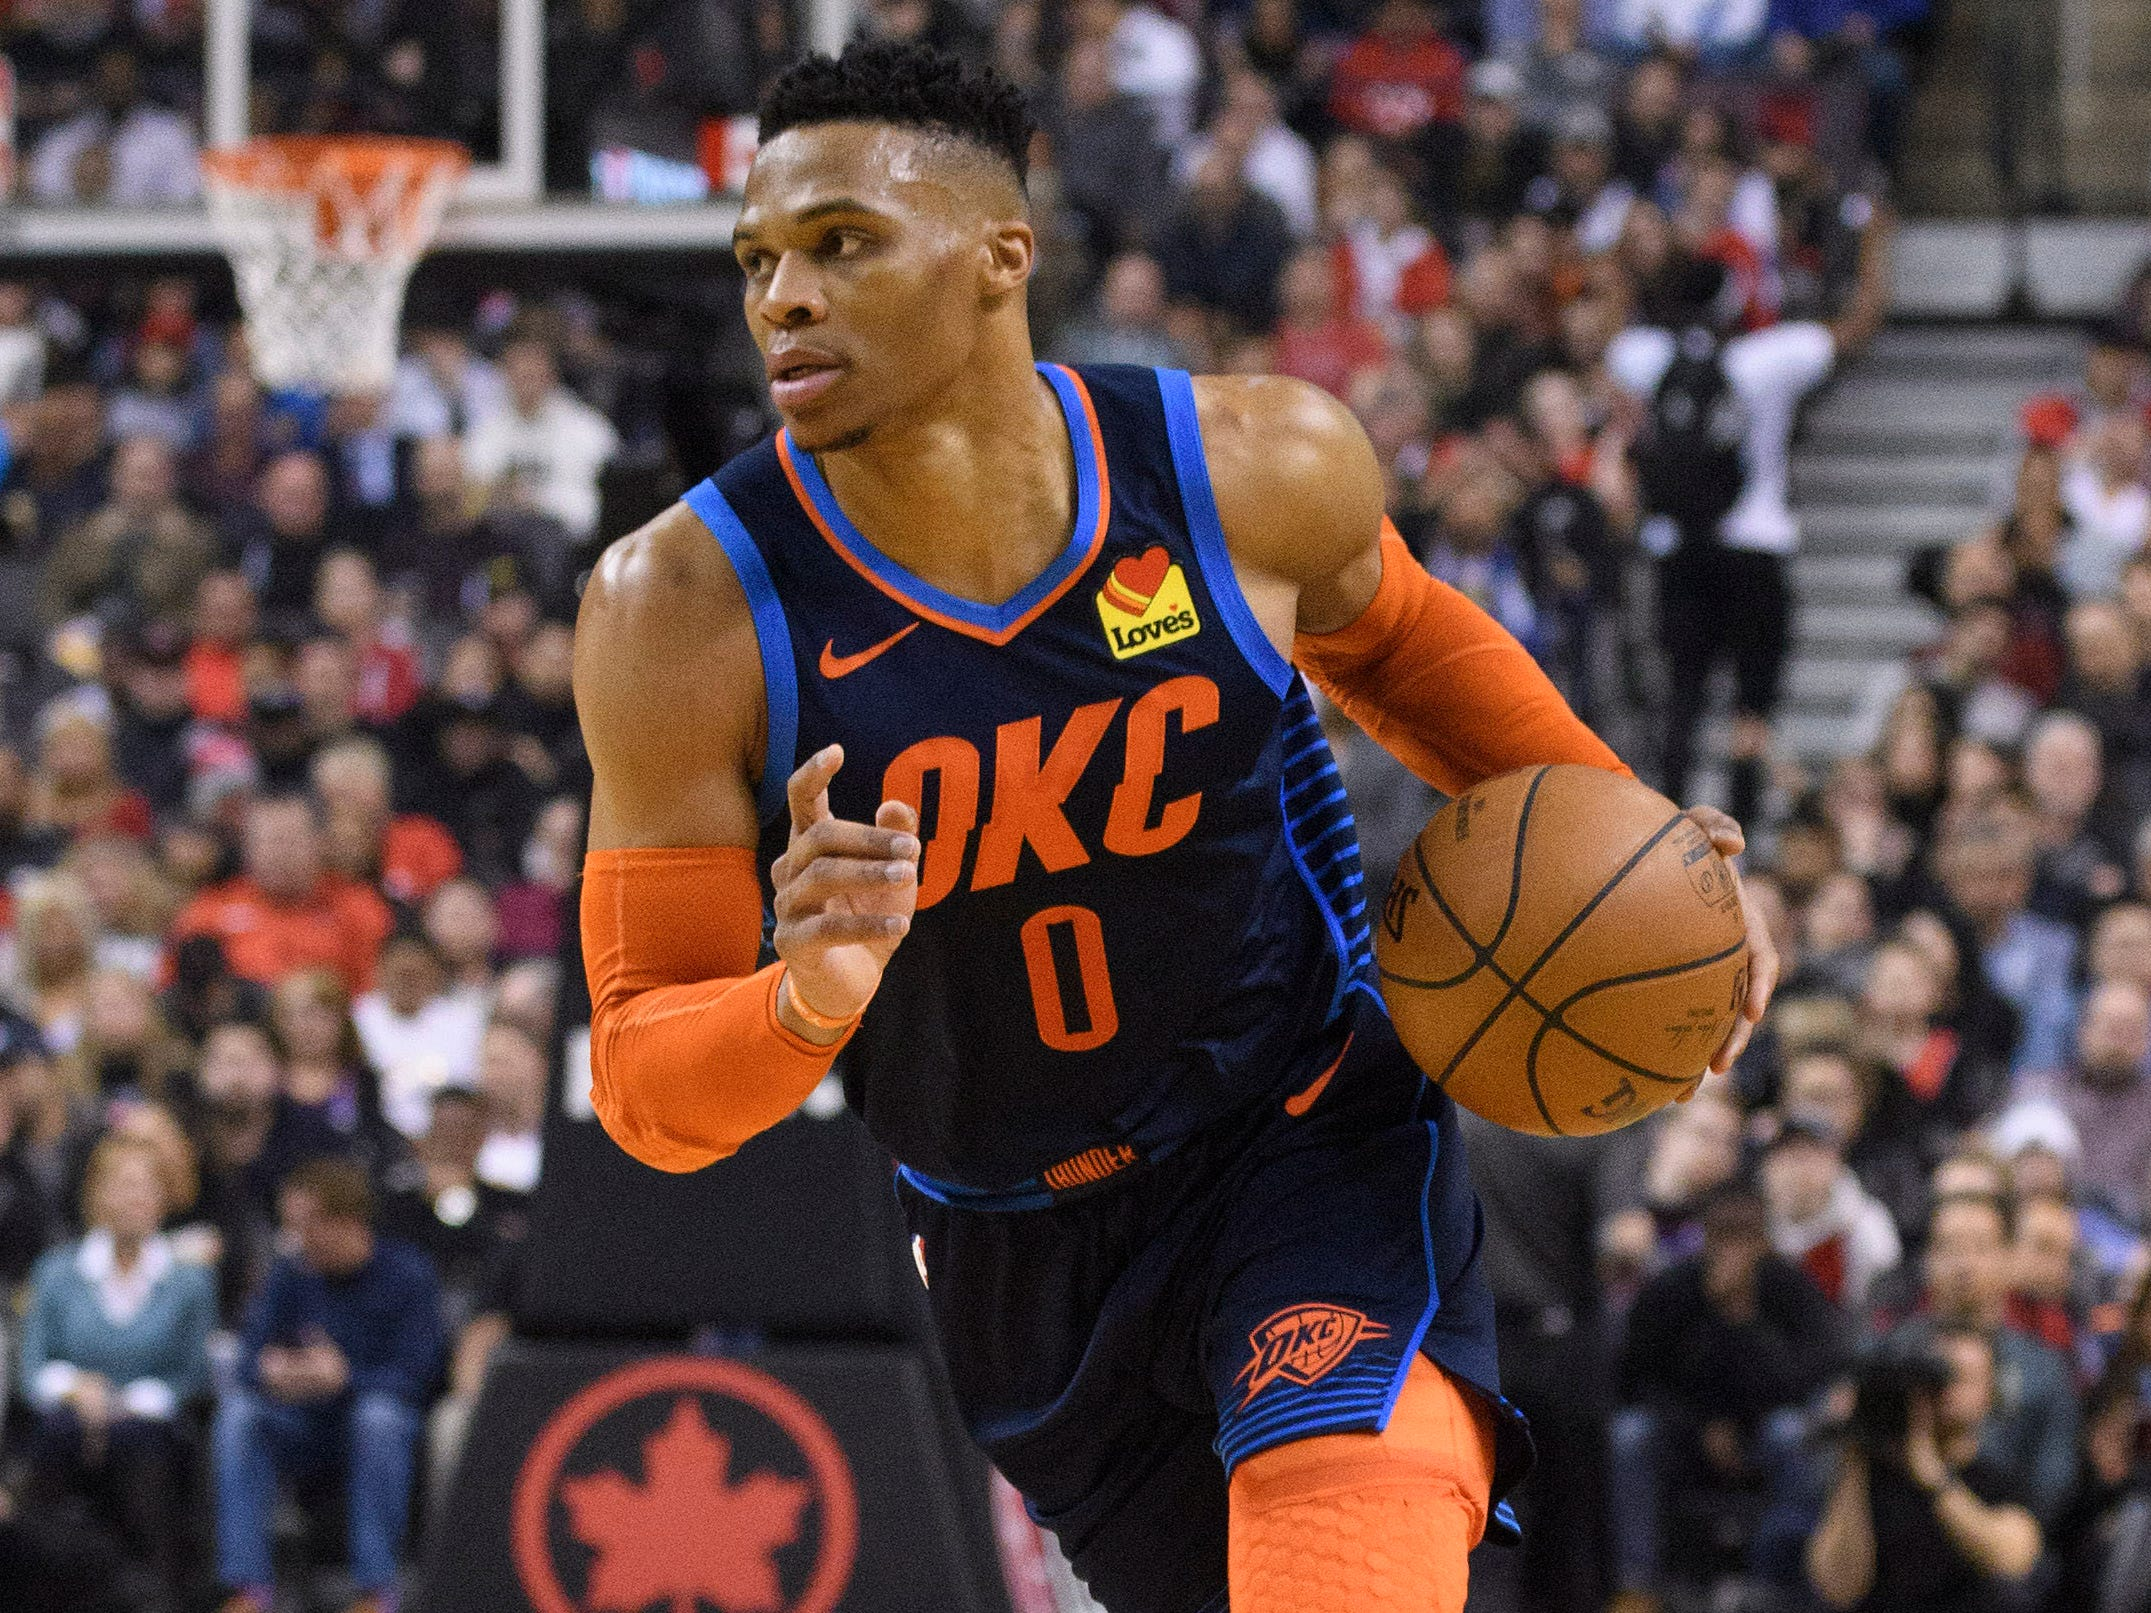 106. Russell Westbrook, Thunder (March 22): 18 points, 13 assist, 12 rebounds in 116-109 win over Raptors (28th of season).